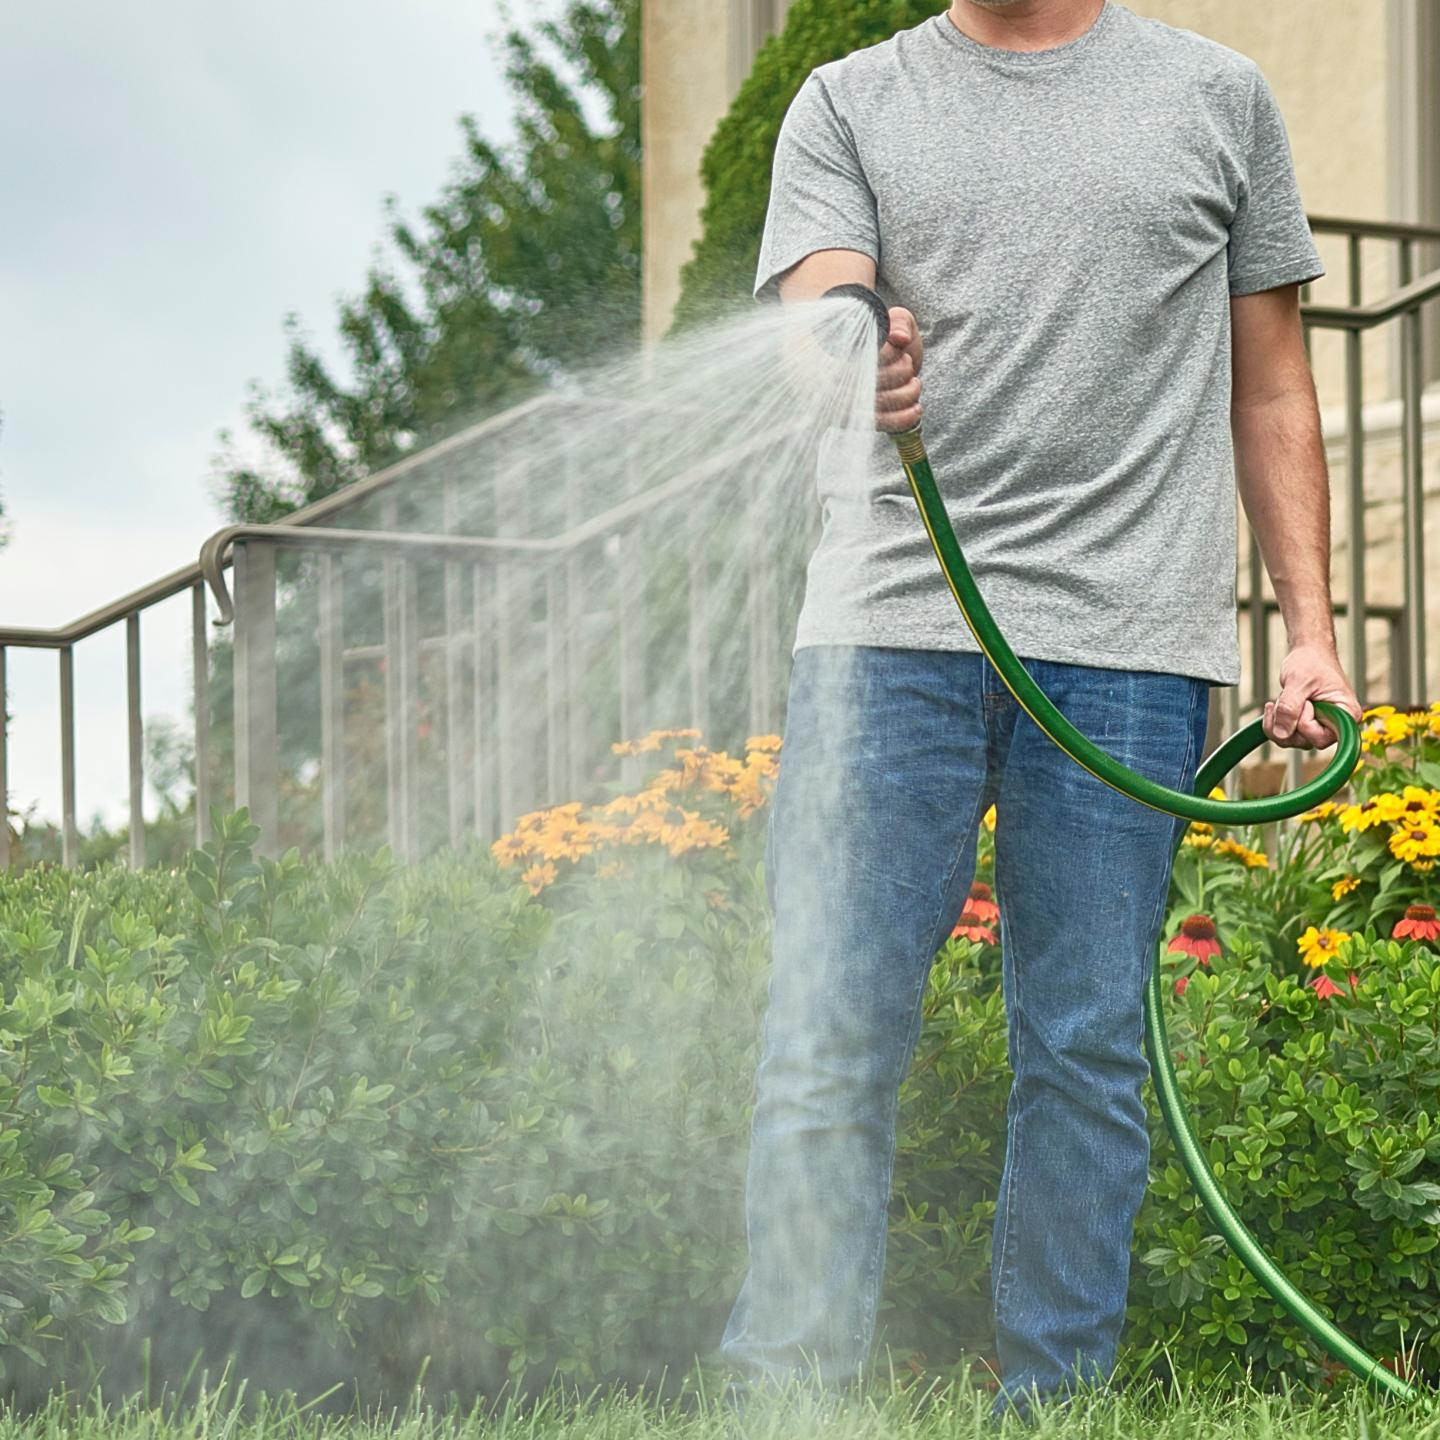 Man using hose to water lawn.